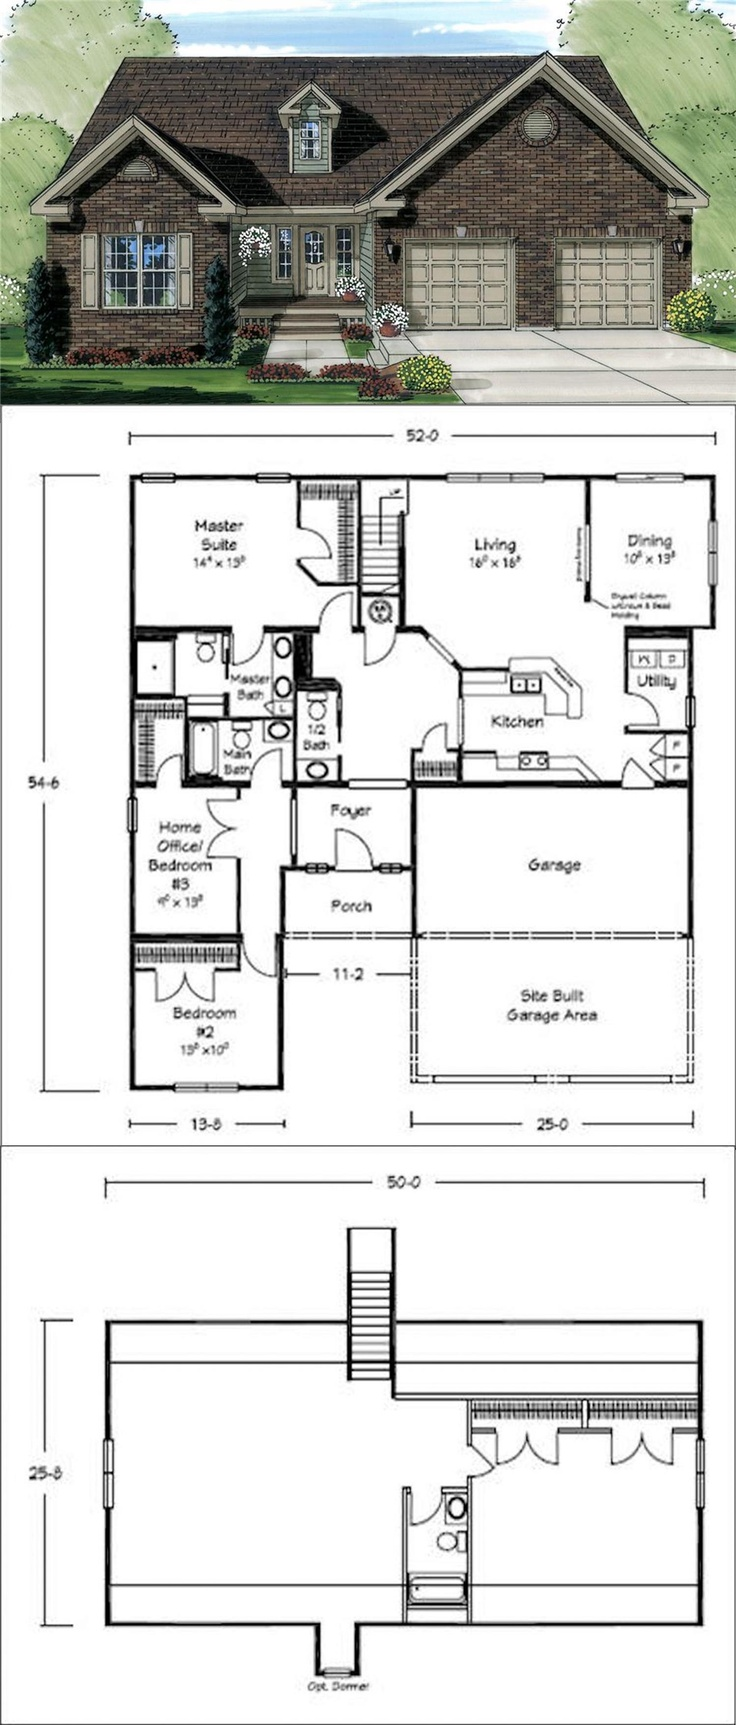 This floor plan has a great galley style